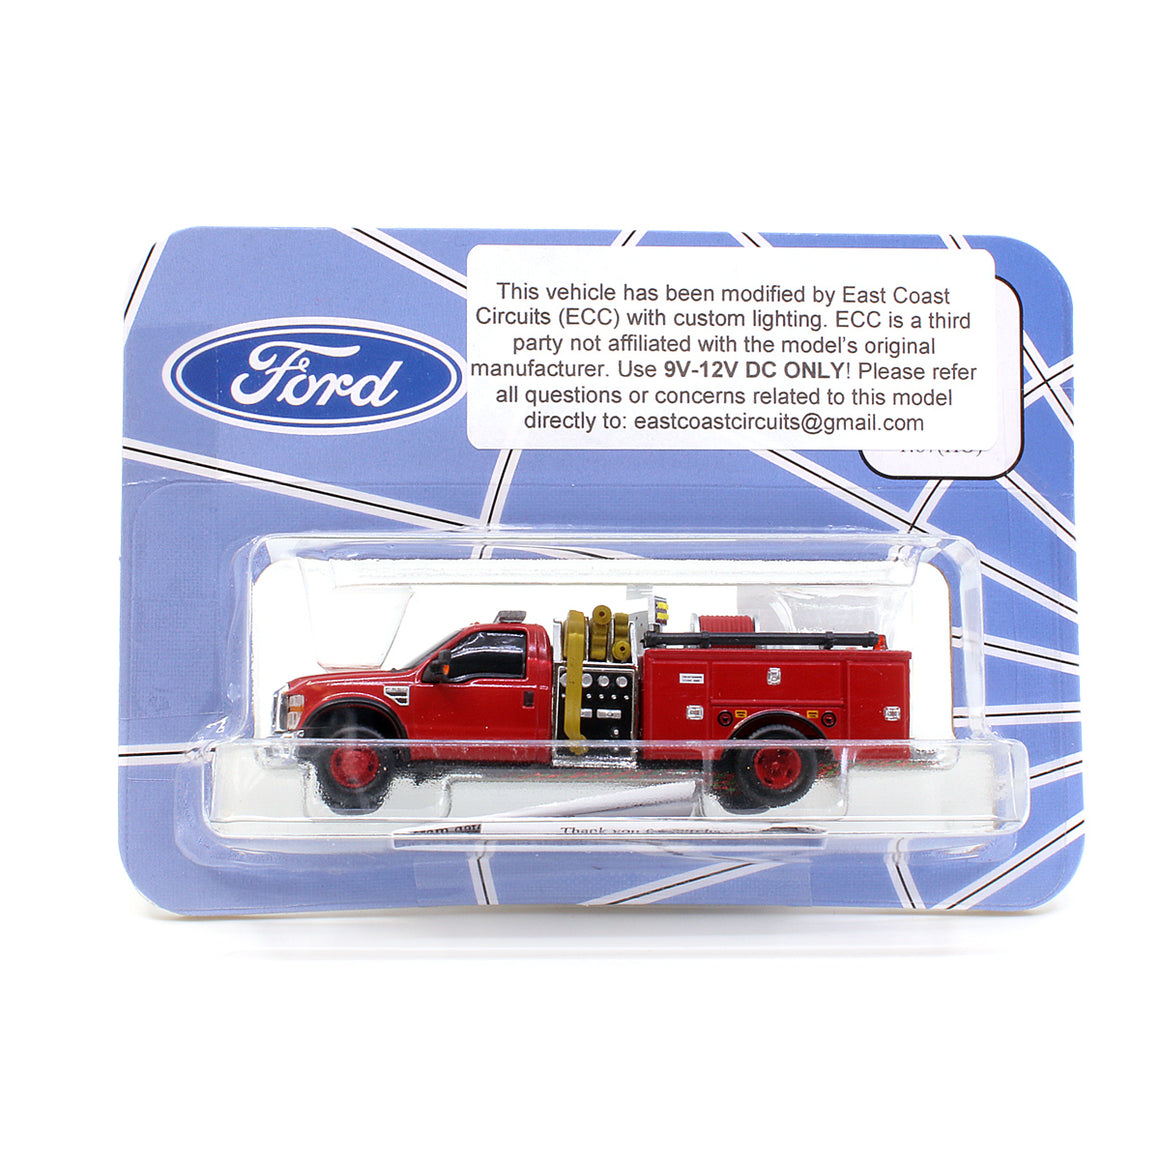 HO Scale: Lighted Ford F-550 - Mini Pumper Fire Truck - Red